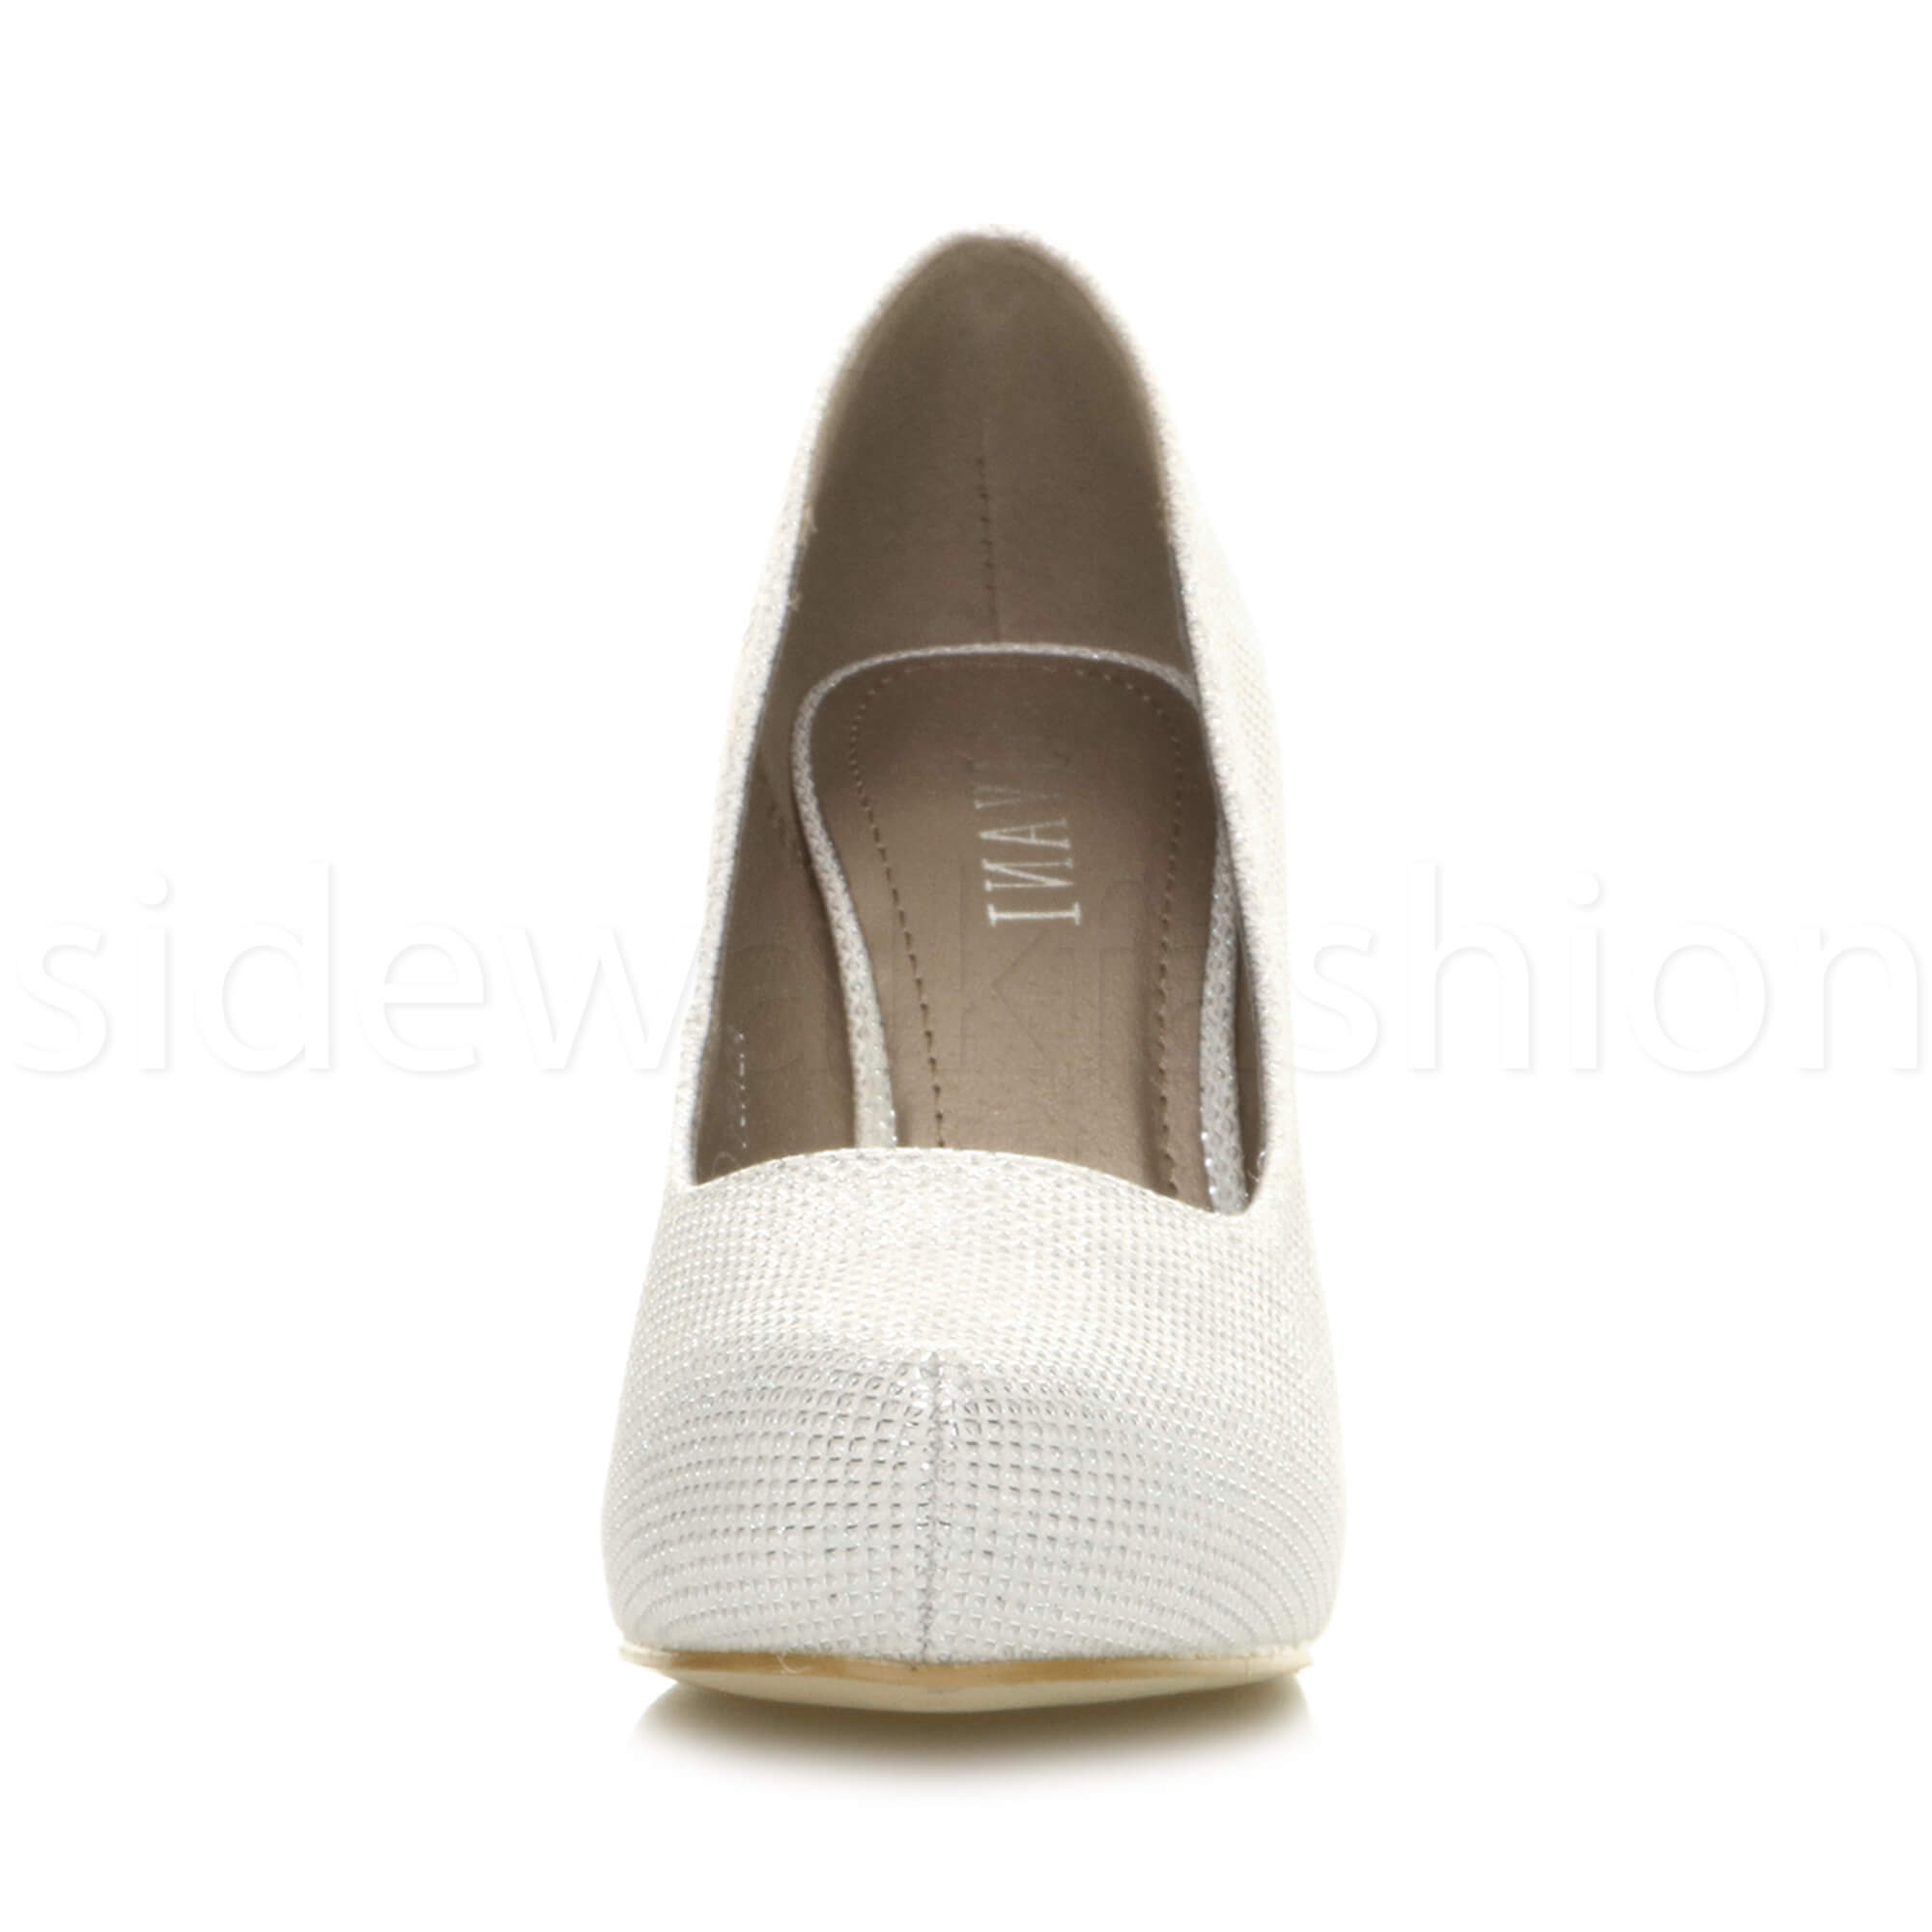 Womens-ladies-low-mid-heel-concealed-platform-work-party-court-shoes-pumps-size thumbnail 71